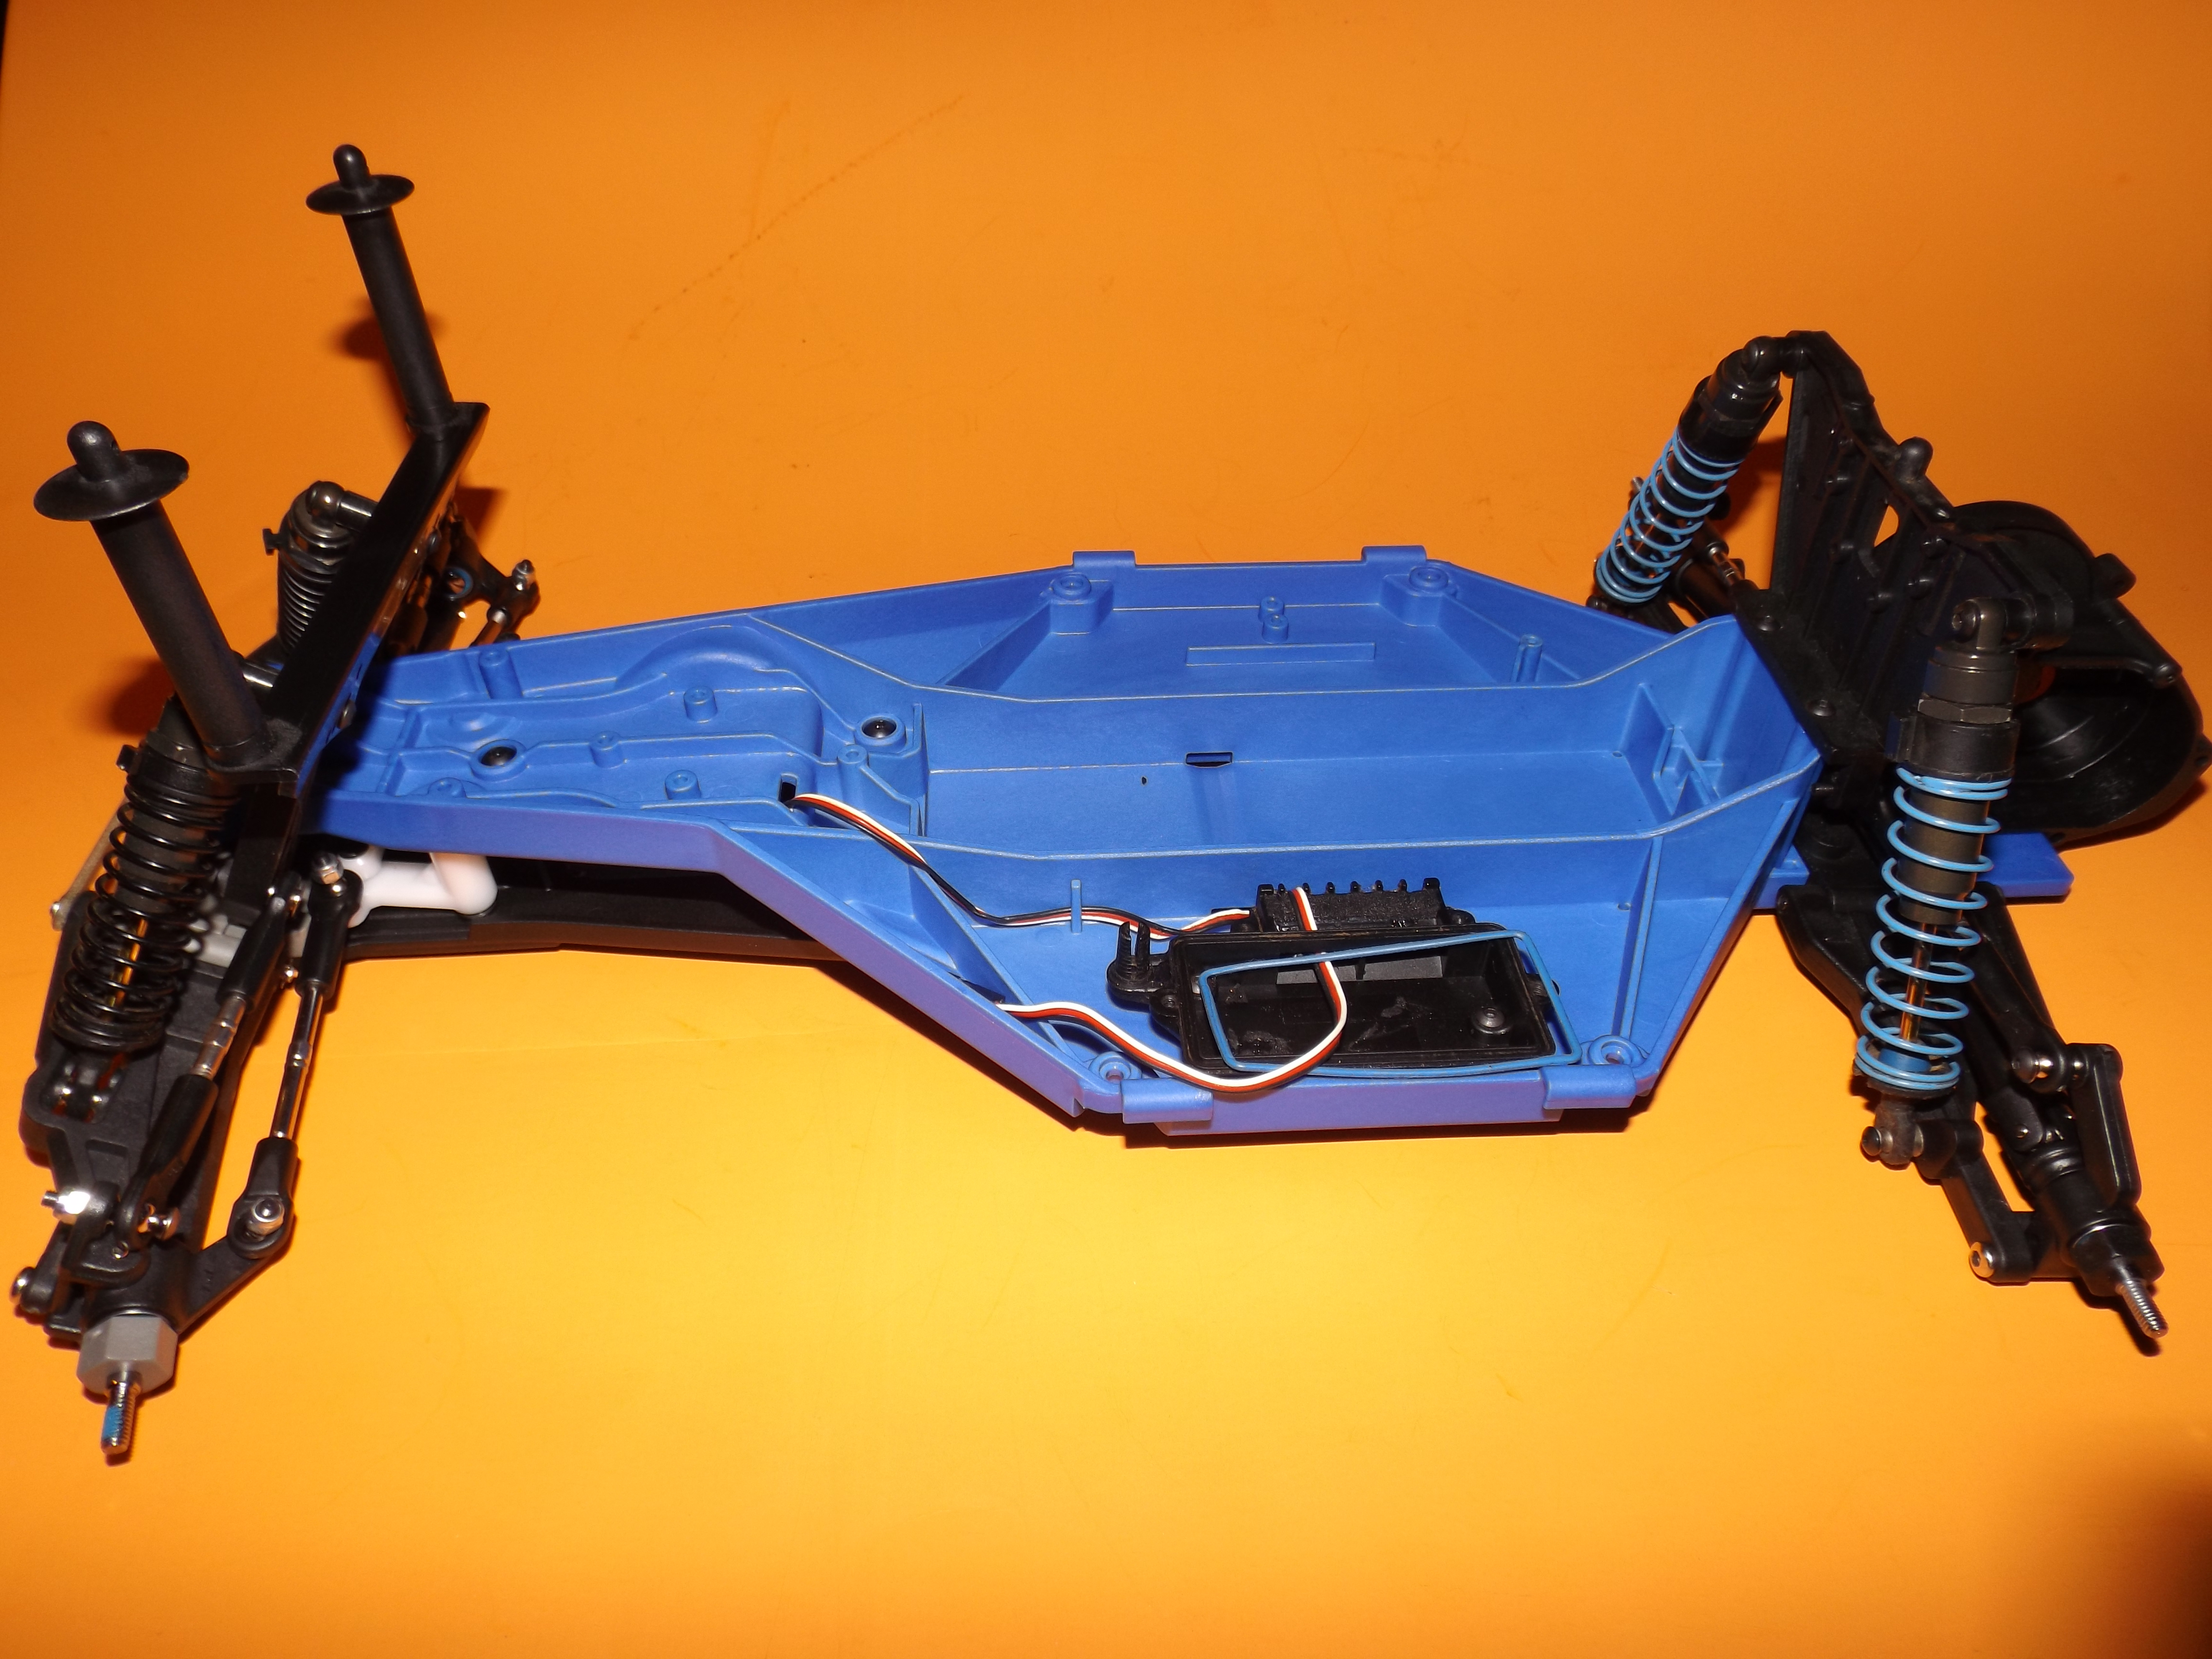 Traxxas Slash 2wd LCG Chassis Review   Sackville RC